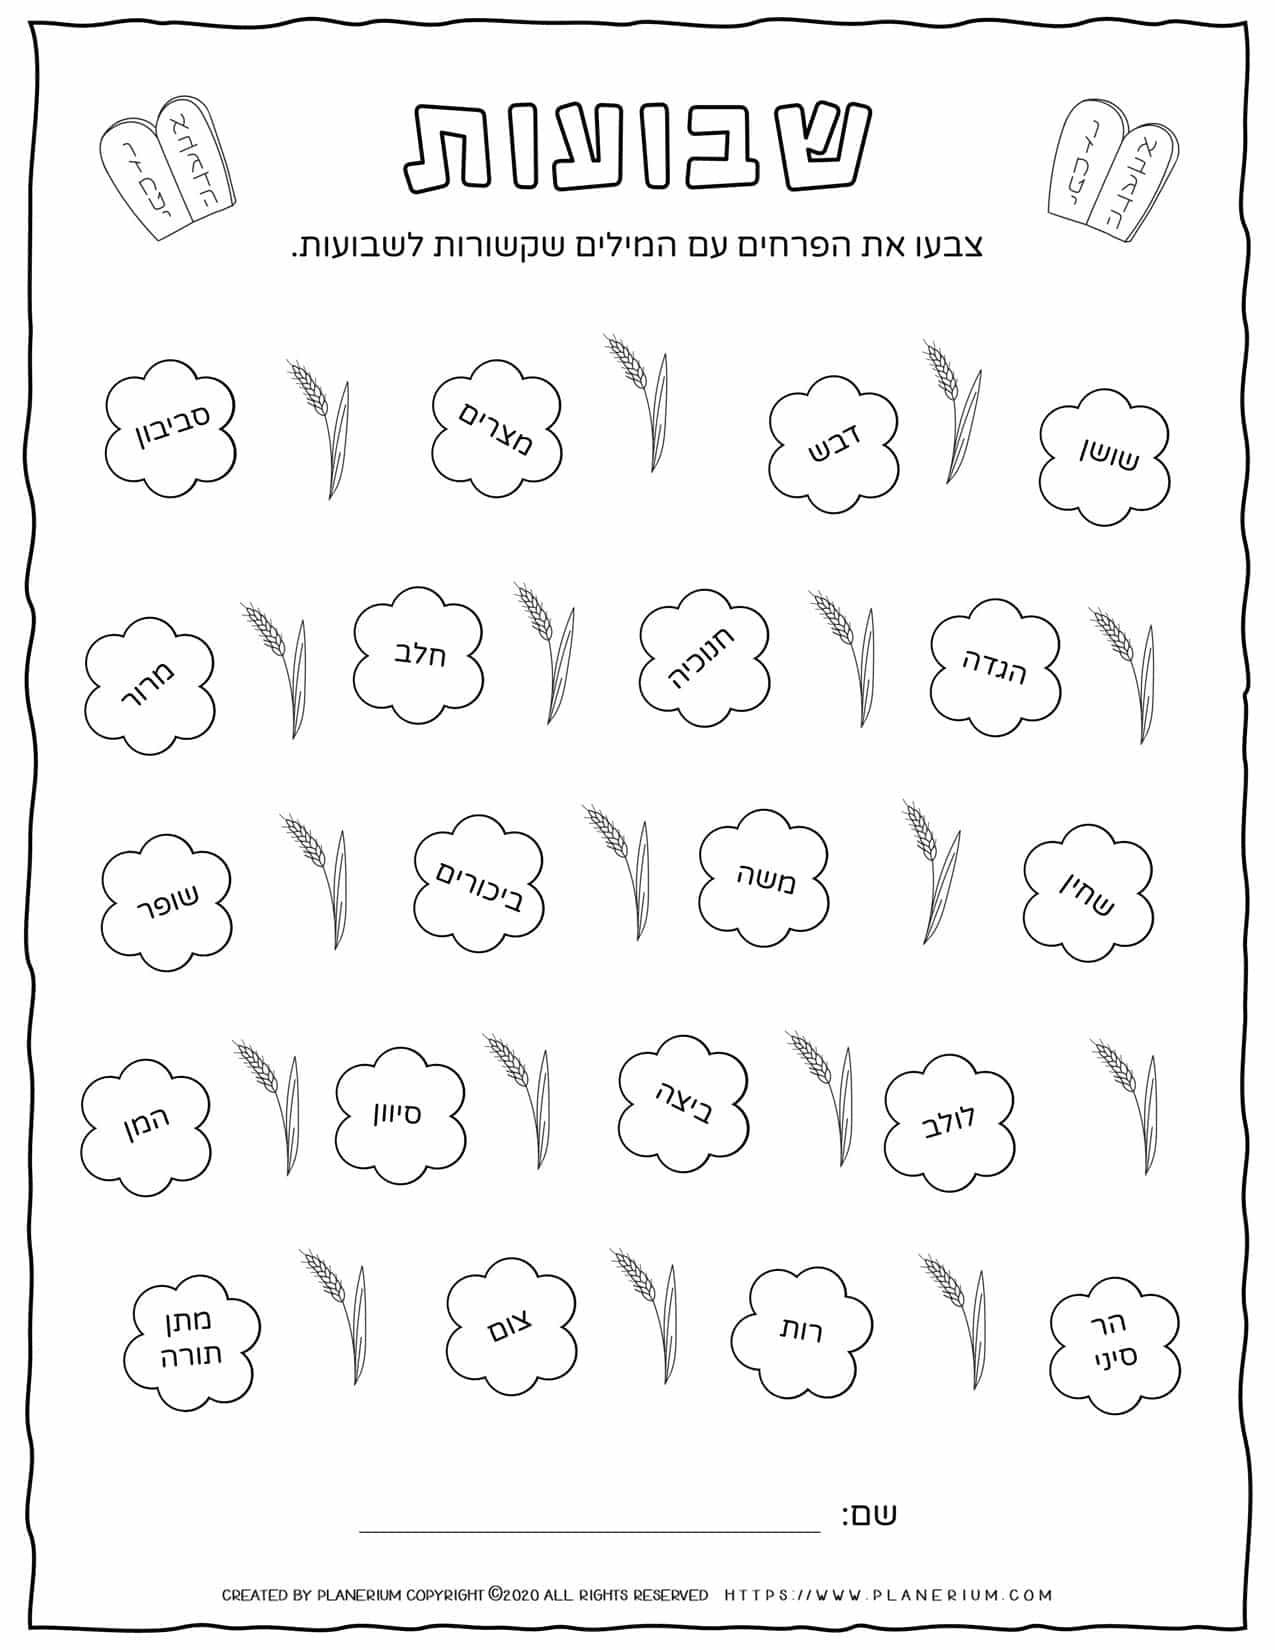 Shavuot Worksheet - Related Words with Flowers in Hebrew | Planerium